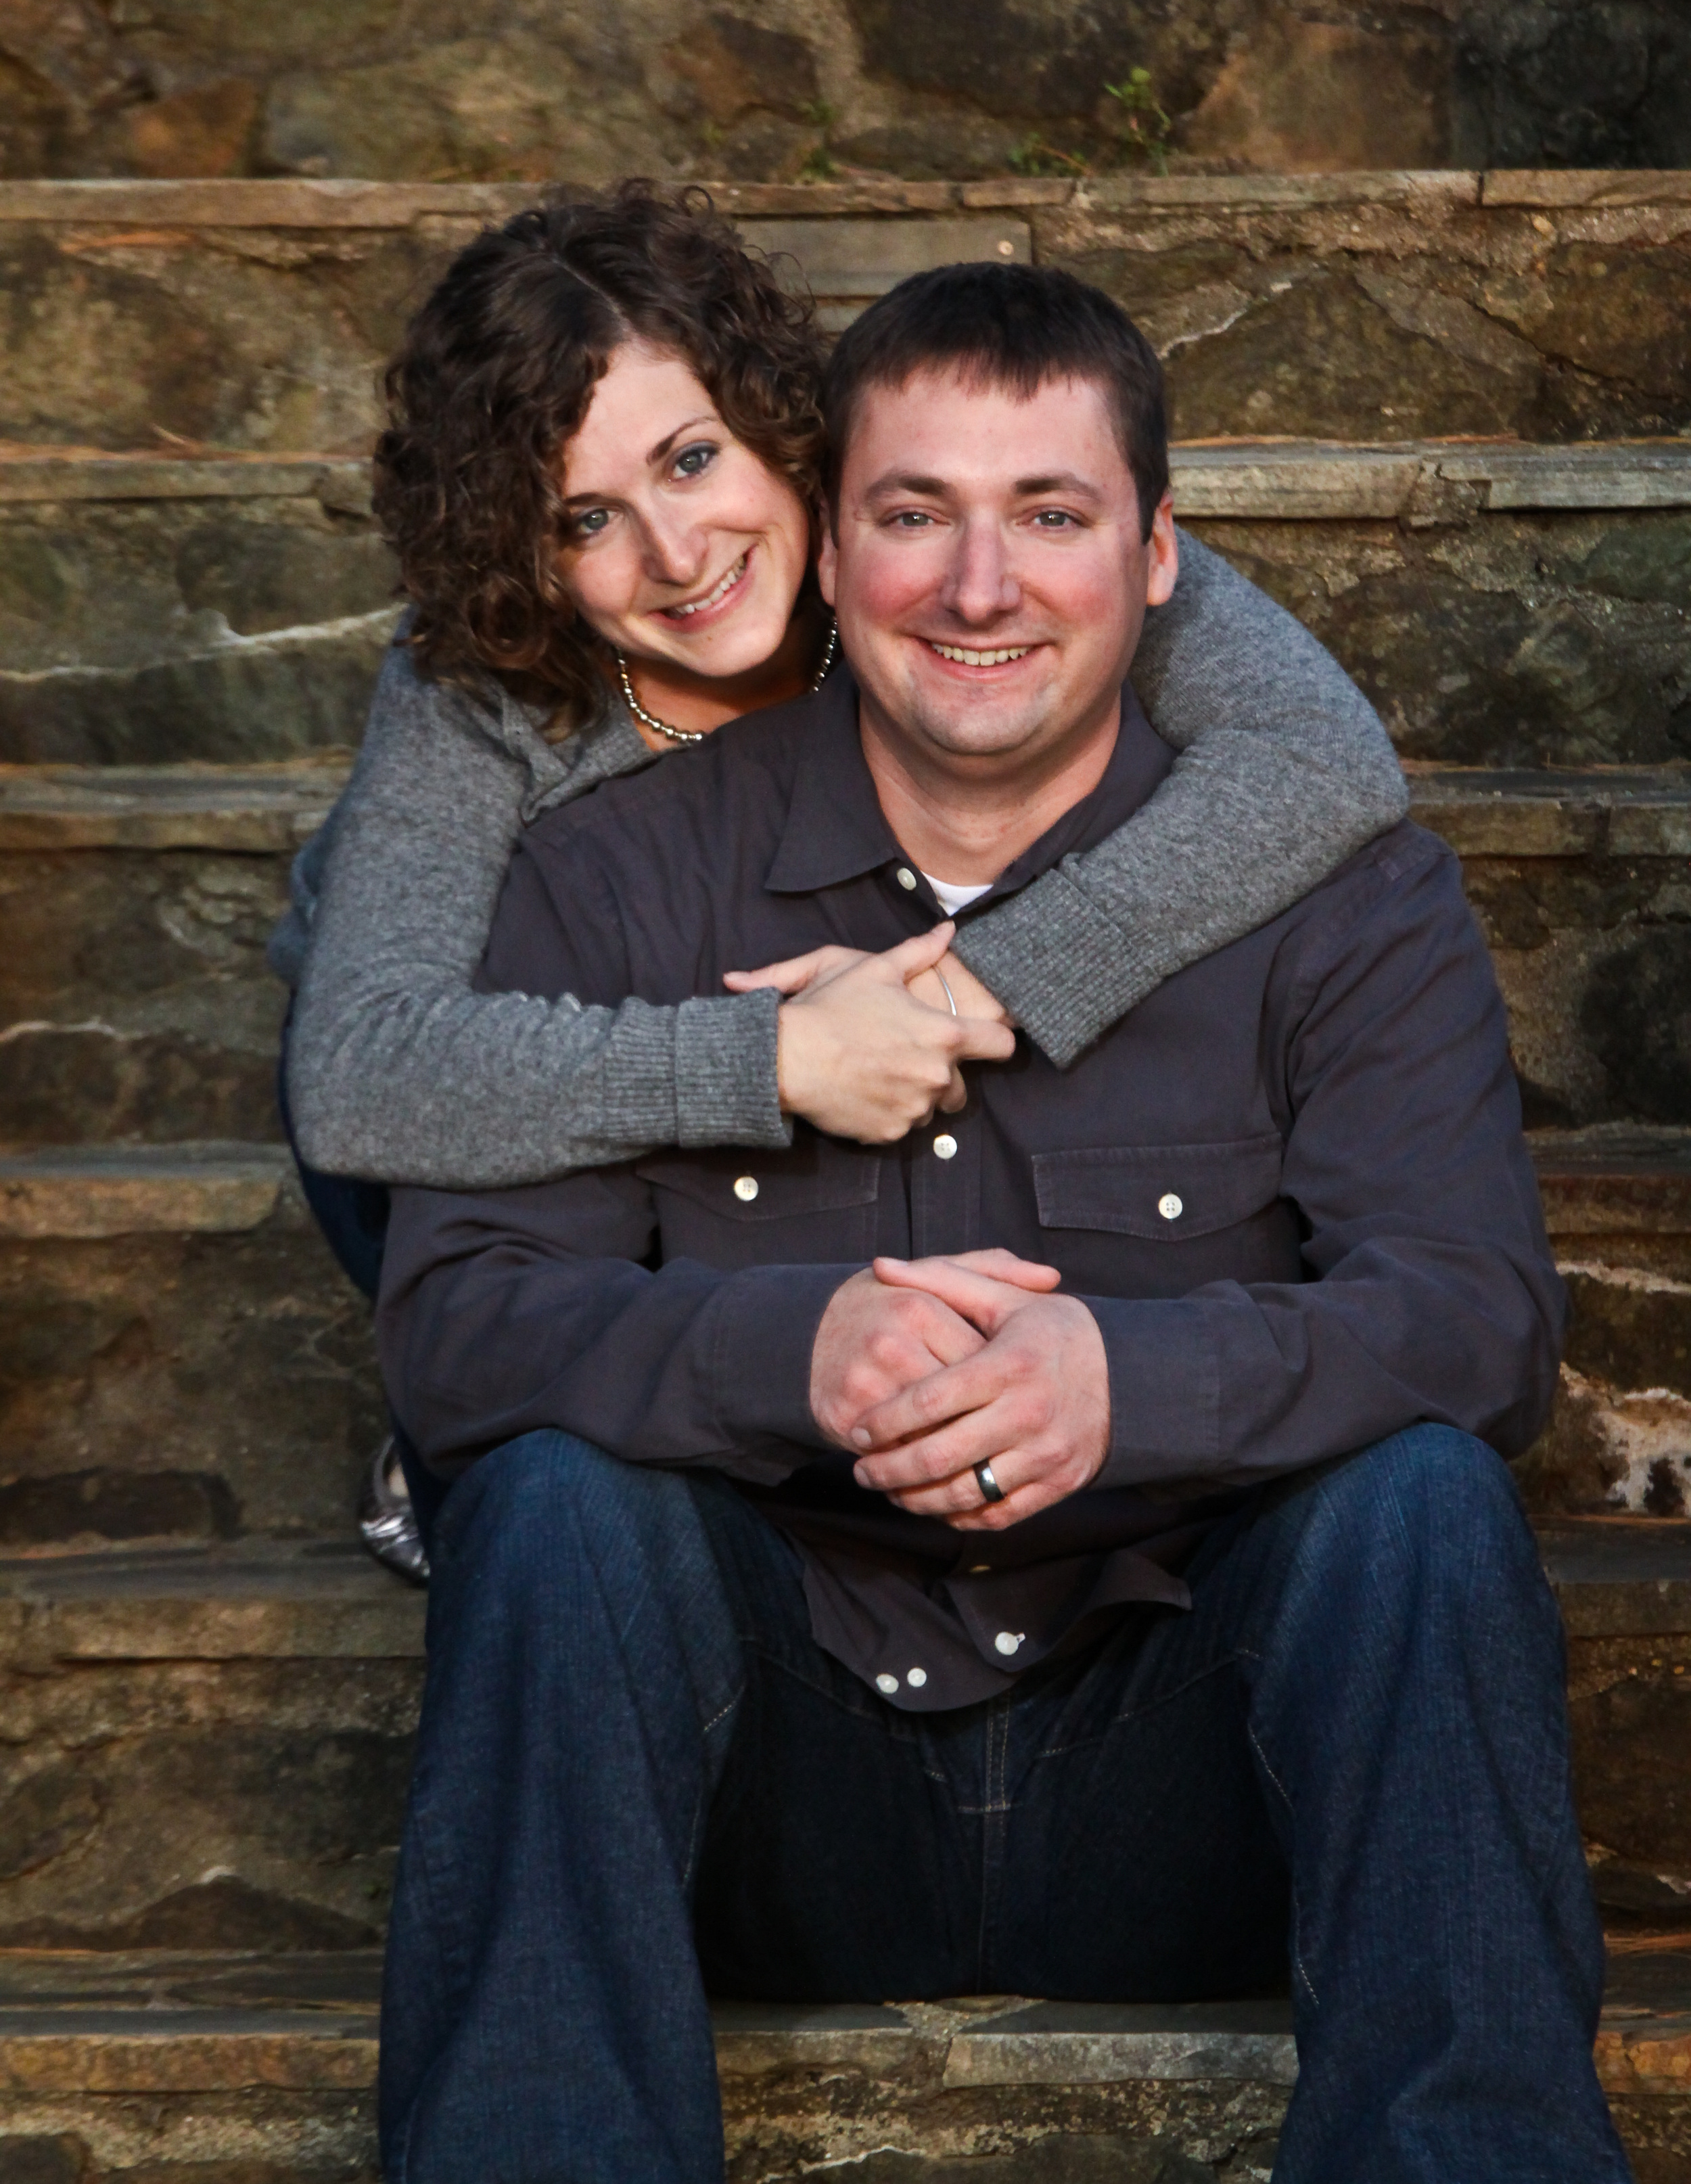 Amy and her husband, Travis. Taken by Josh Hart, Live Green Imagining, 2012.